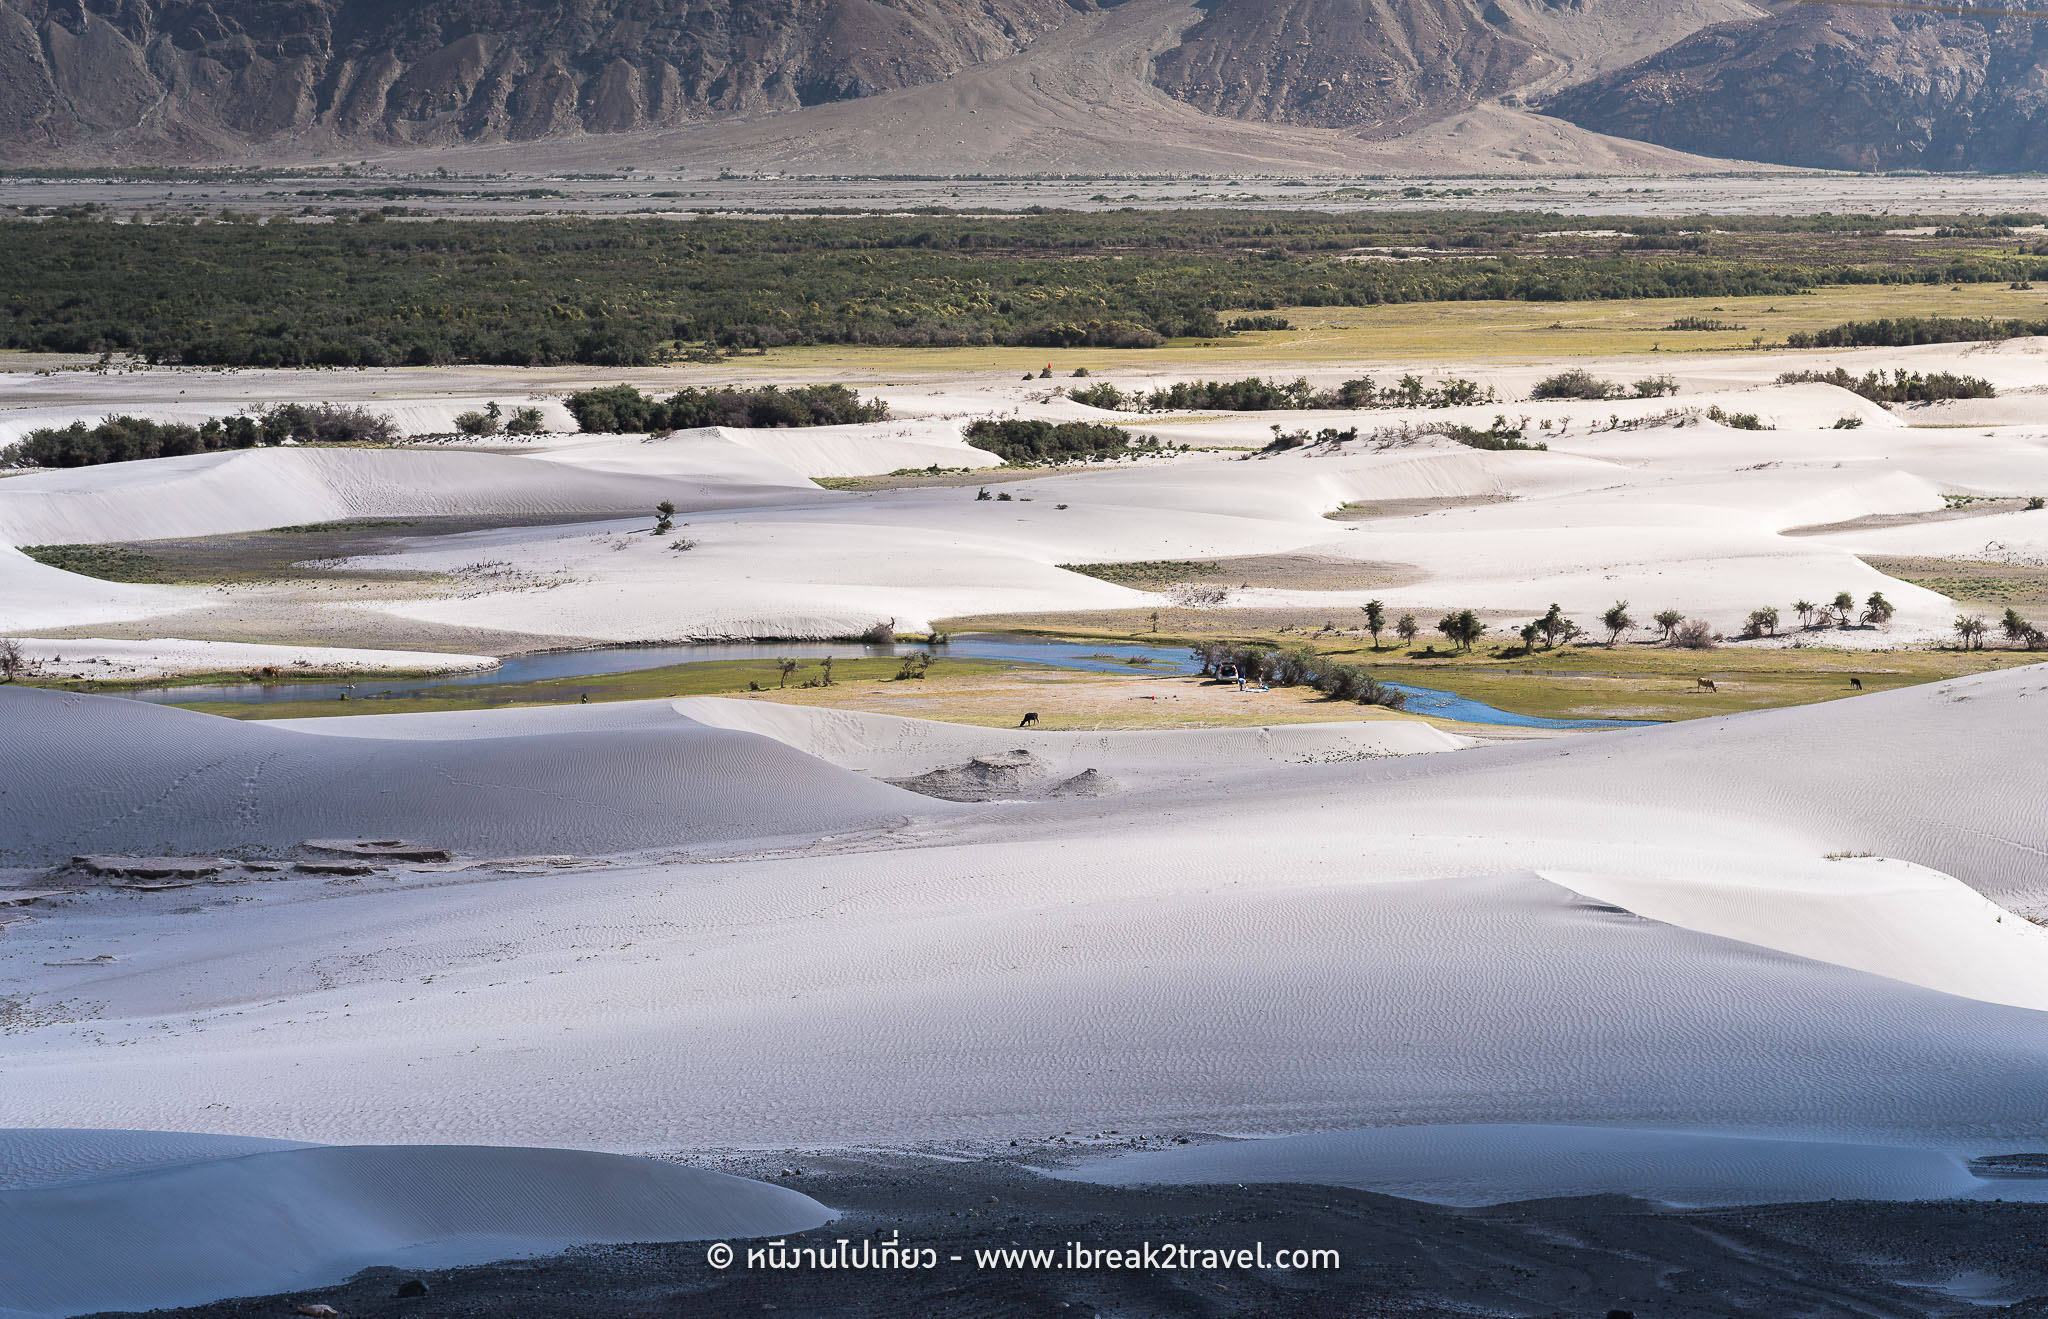 Sand dune of Nubra Valley